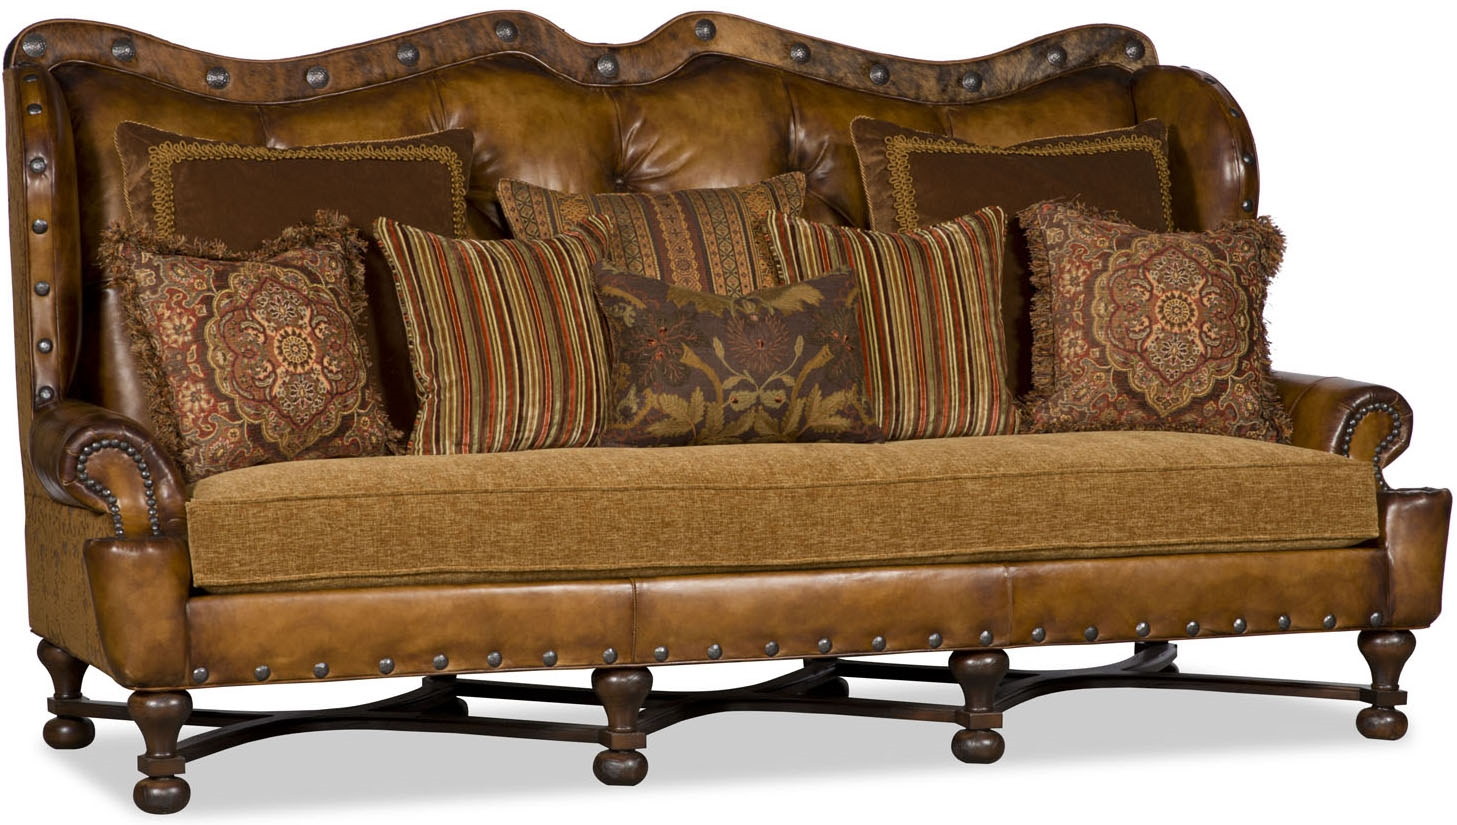 SOFA, COUCH U0026 LOVESEAT Tufted Nail Head Curved Sofa